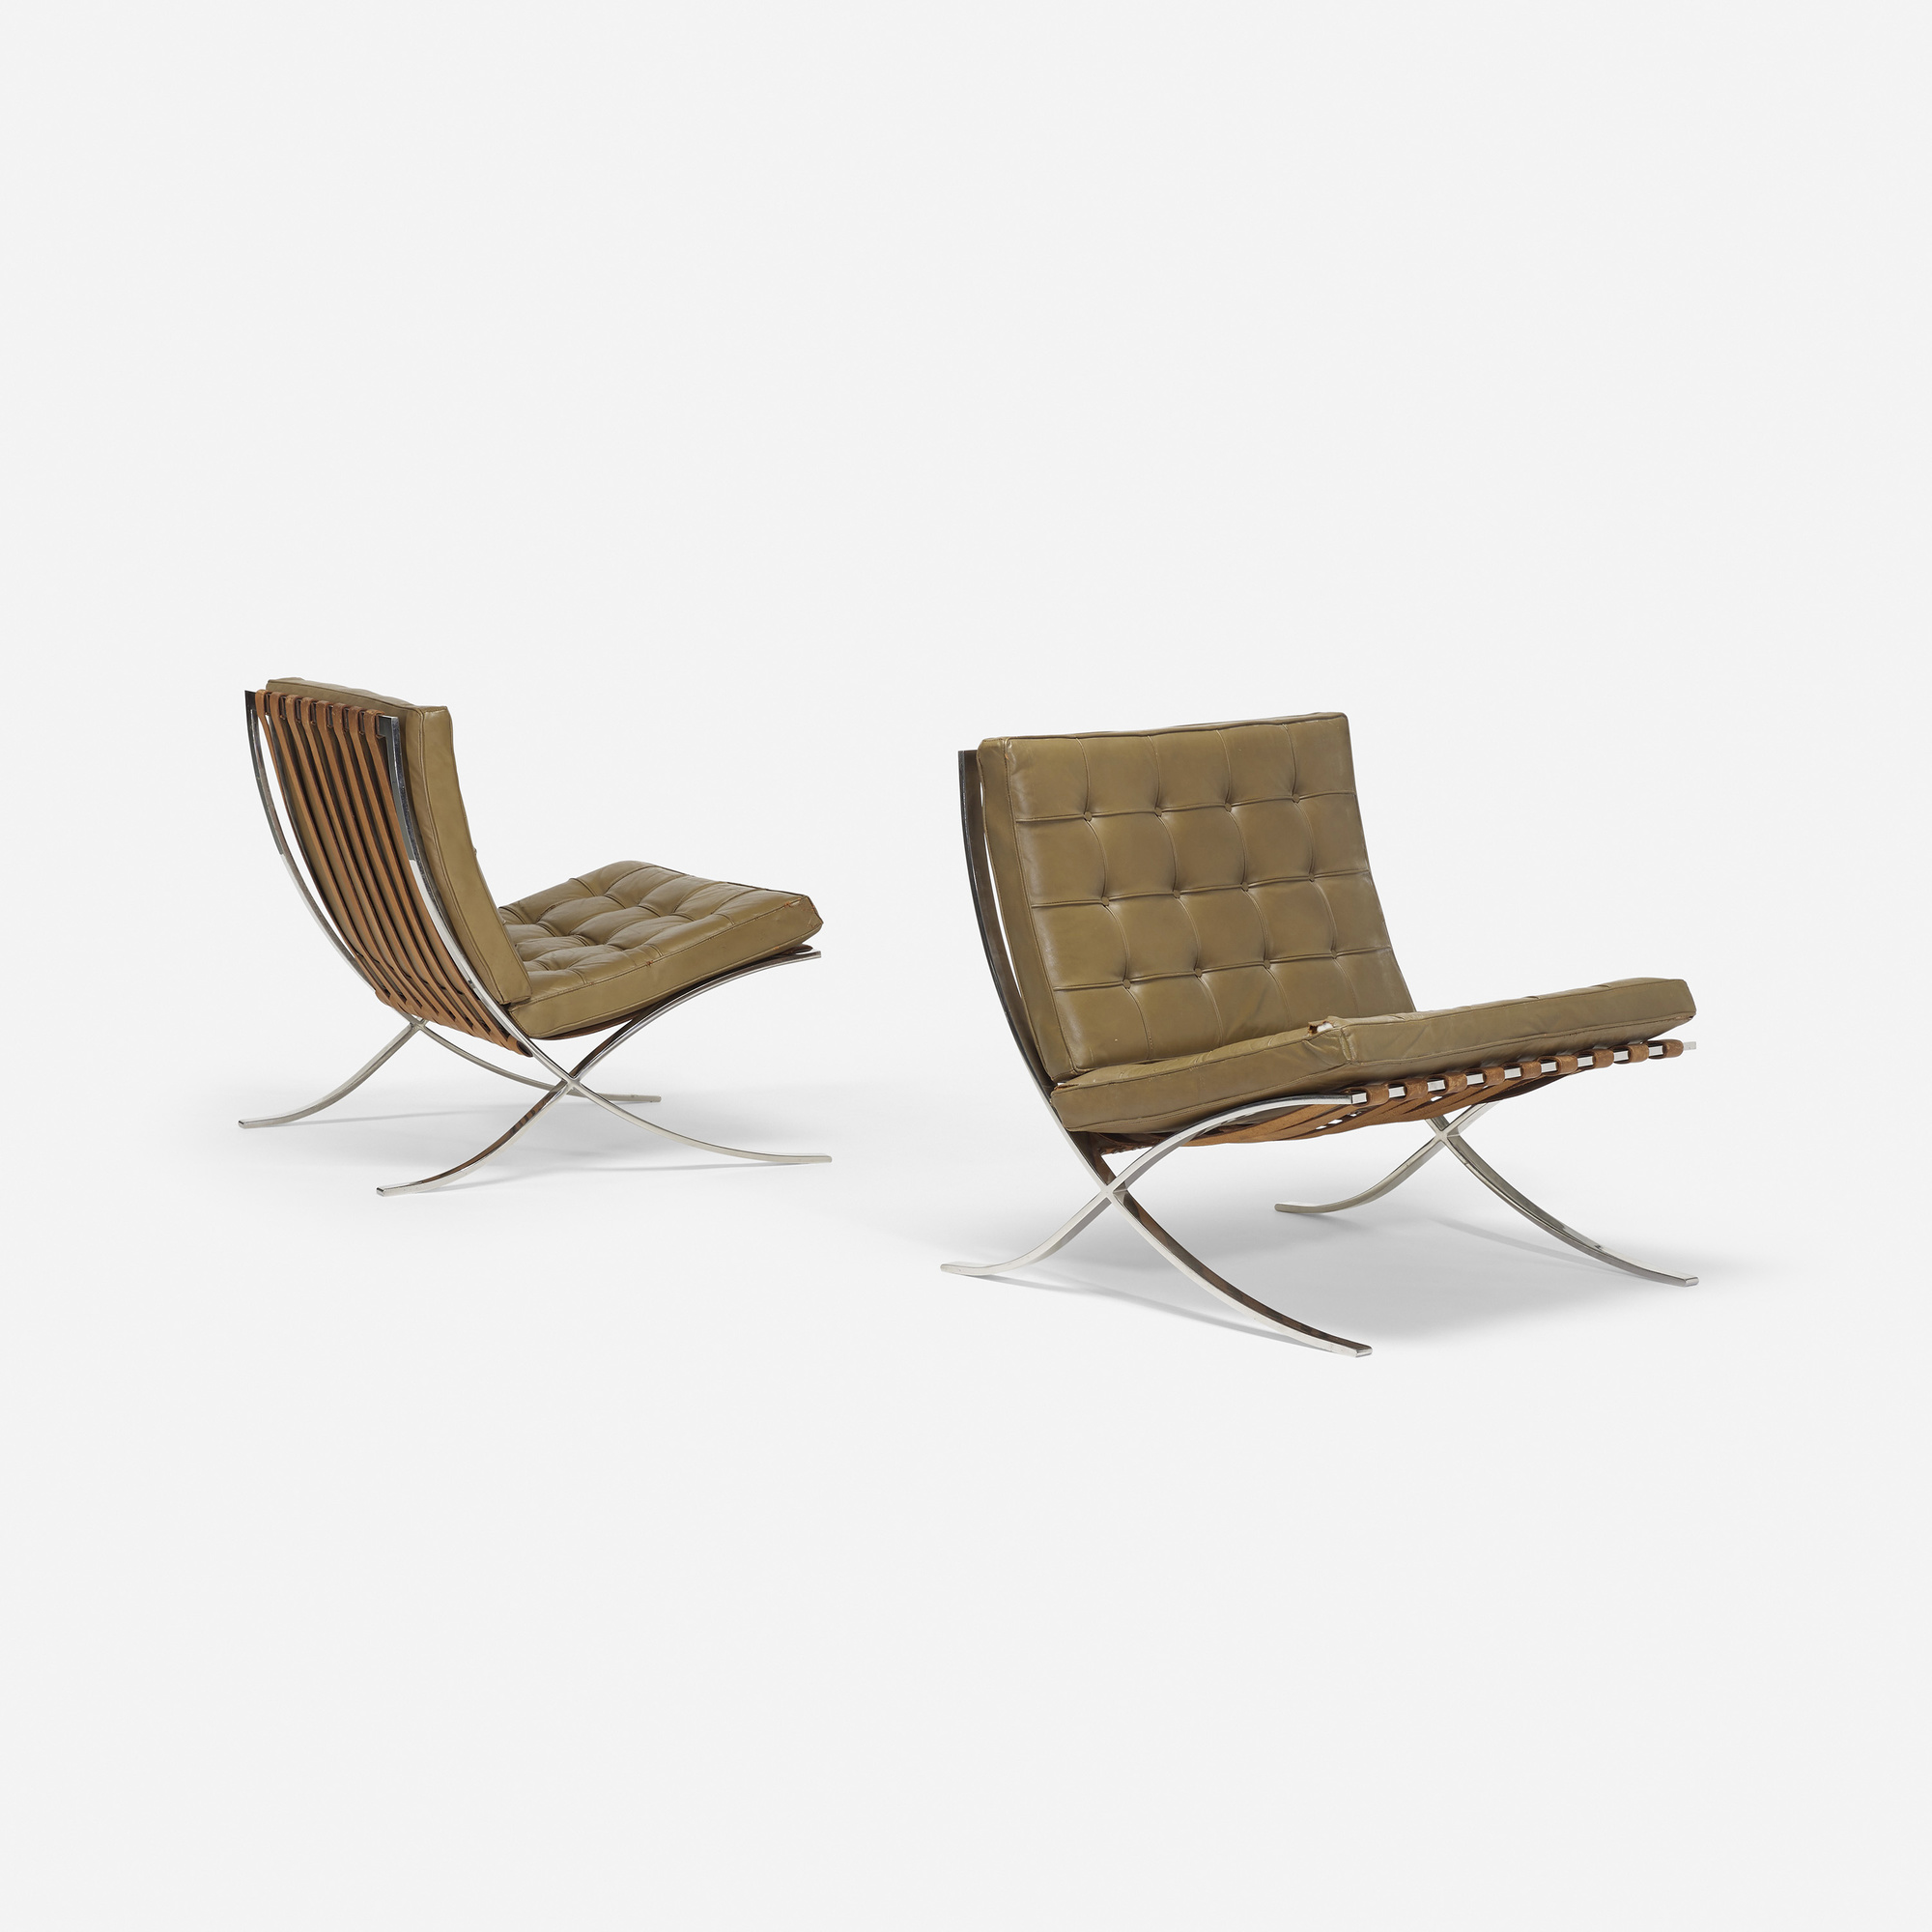 Van Der Rohe Furniture On 450 Ludwig Mies Van Der Rohe Barcelona Chairs Pair 2 Of Ludwig Mies Van Der Rohe u003c Design 22